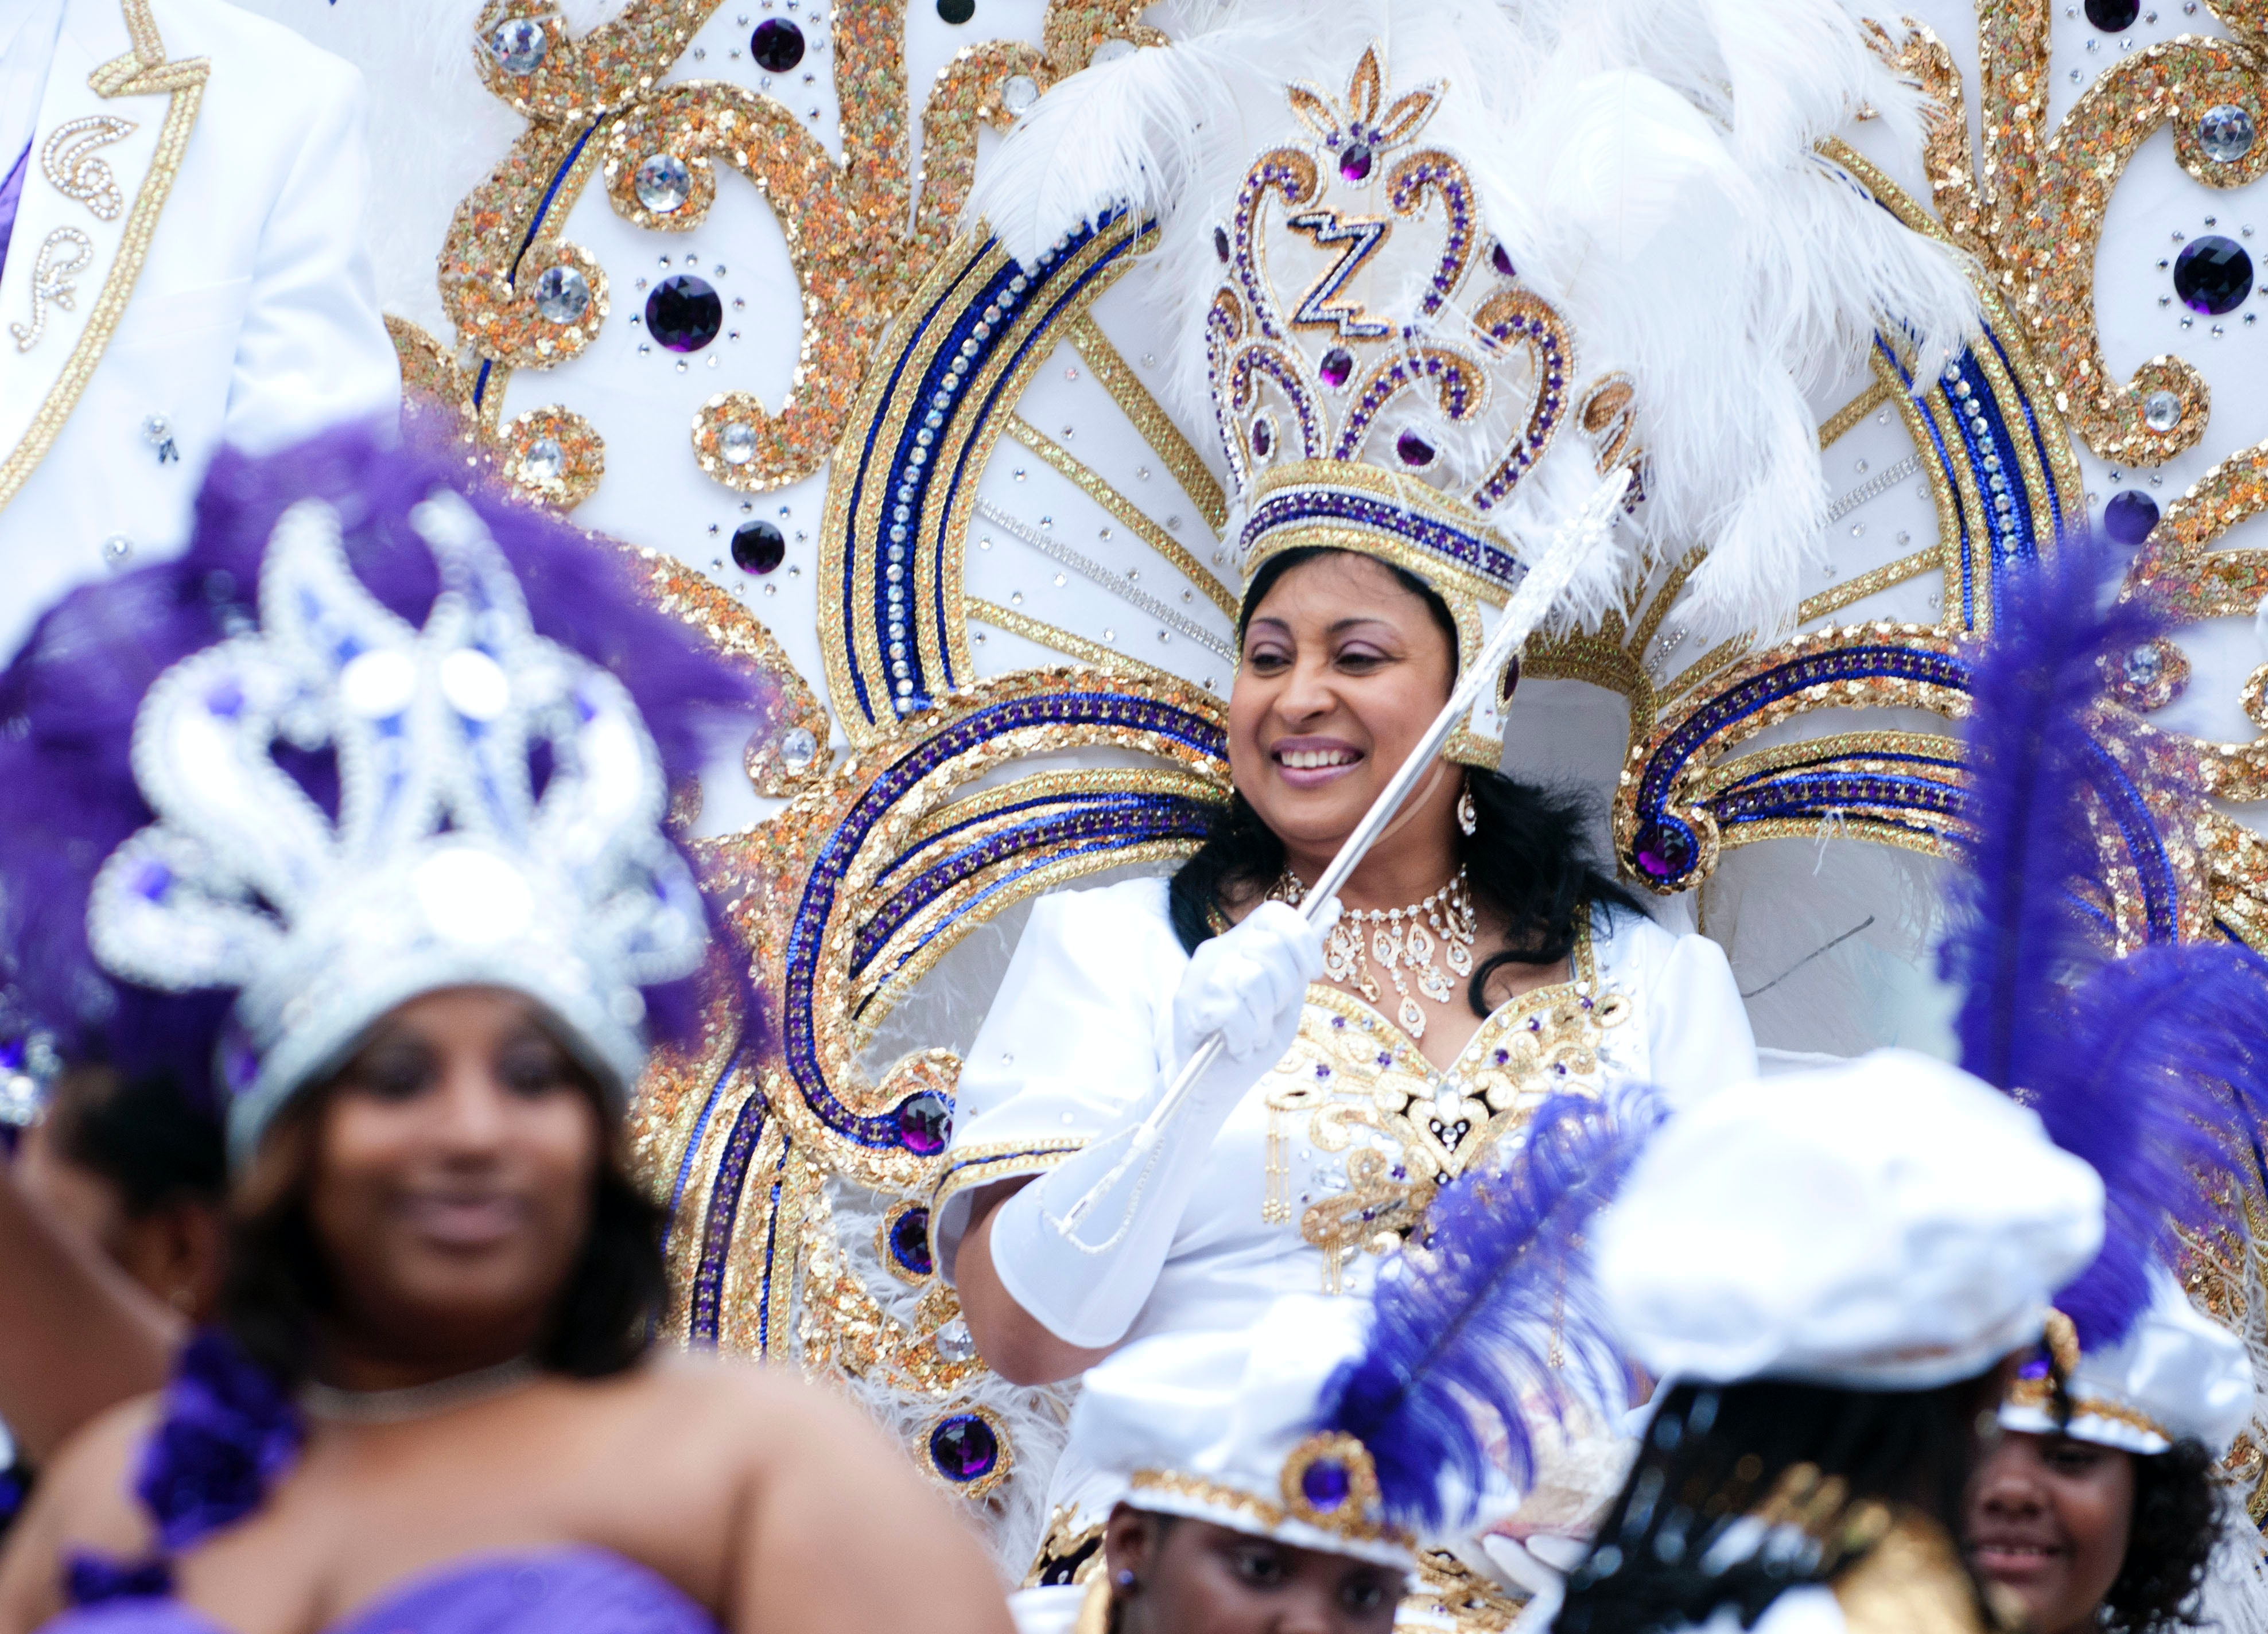 7 Mardi Gras Quotes That Embody The Spirit Of This Raucous Holiday